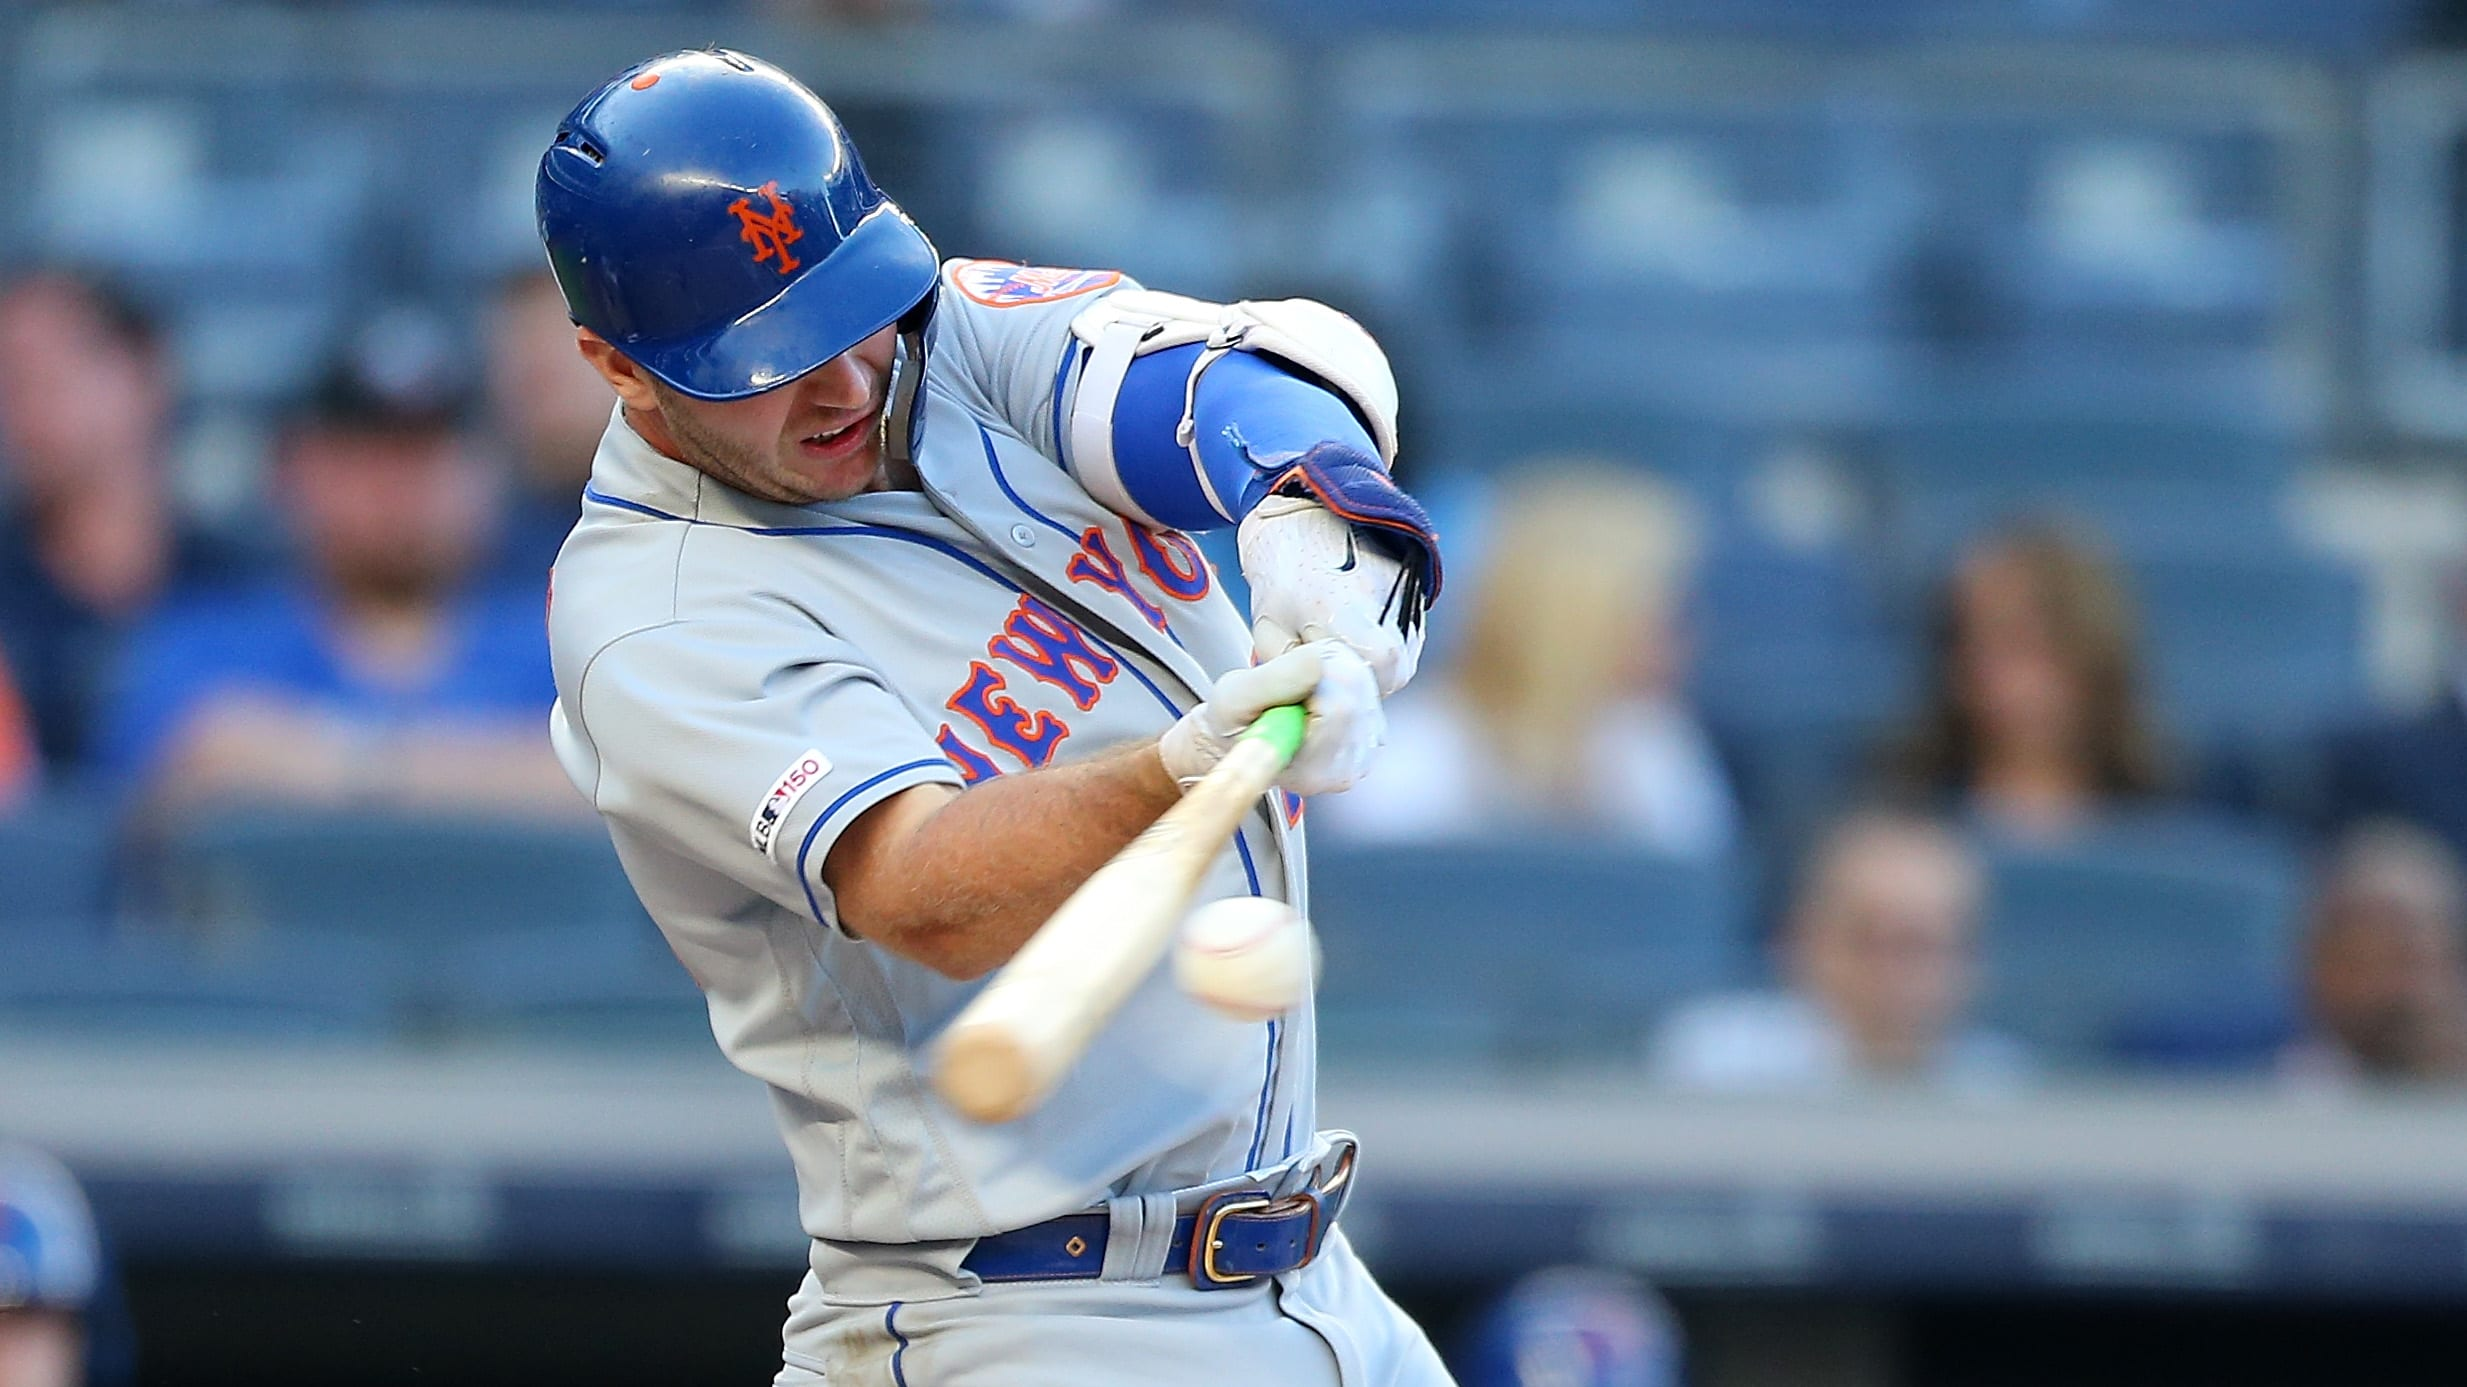 NEW YORK, NEW YORK - JUNE 11:  Pete Alonso #20 of the New York Mets hits a three-run home run to left center field in the first inning against the New York Yankees at Yankee Stadium on June 11, 2019 in New York City. (Photo by Mike Stobe/Getty Images)